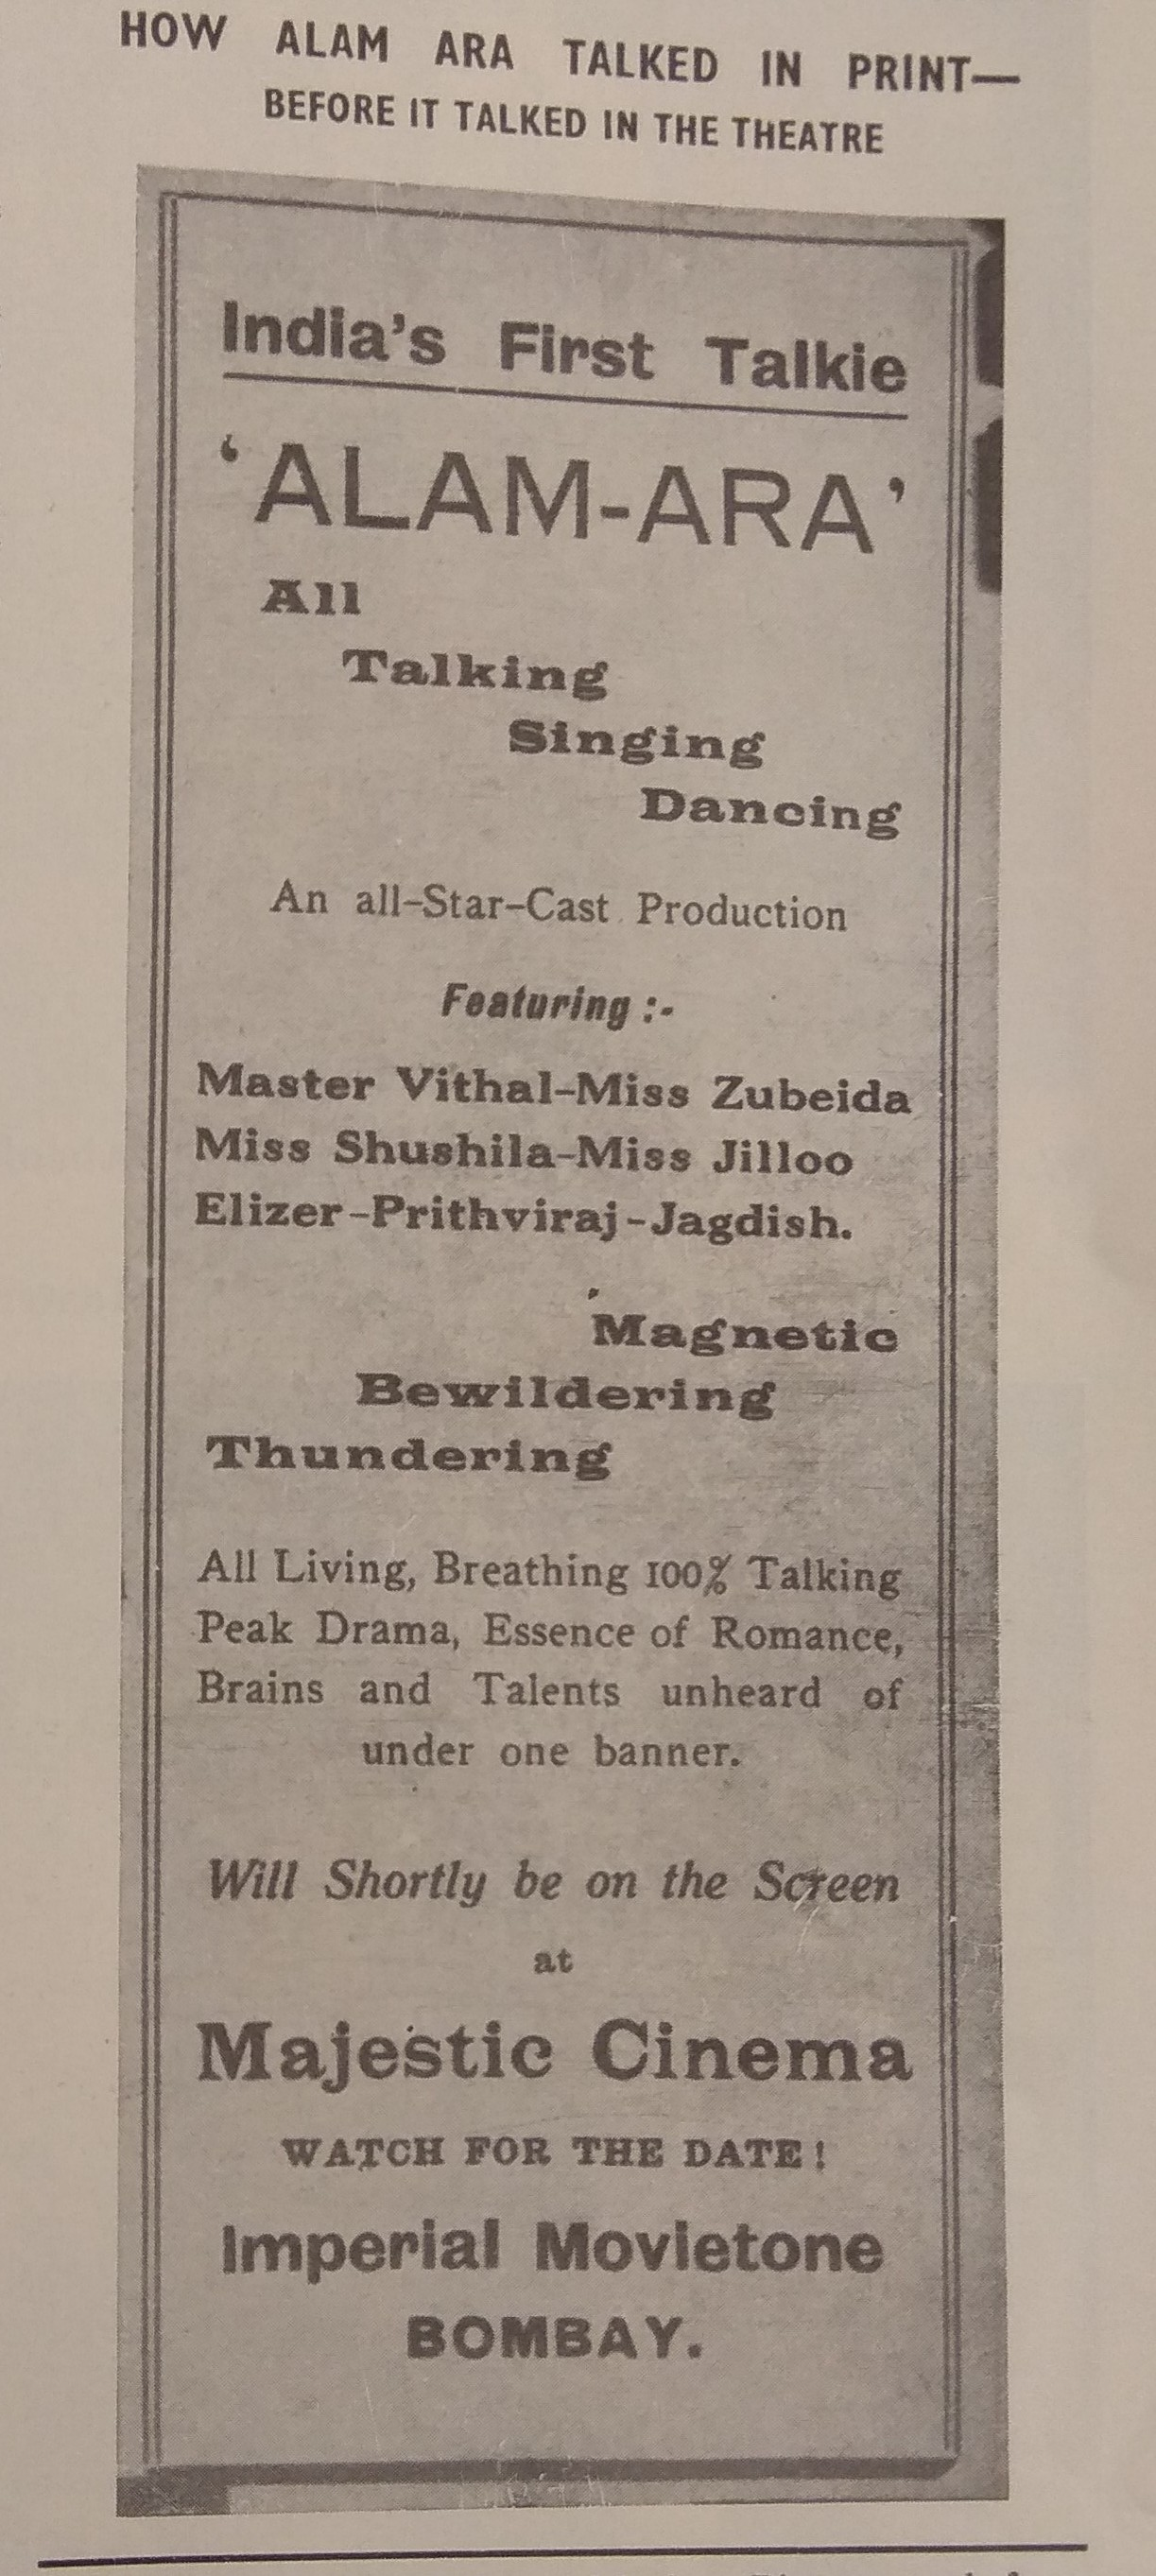 A souvenir from Alam-ara, 'India's first talkie'. The leaflet describers it as 'All talking, singing, dancing.'